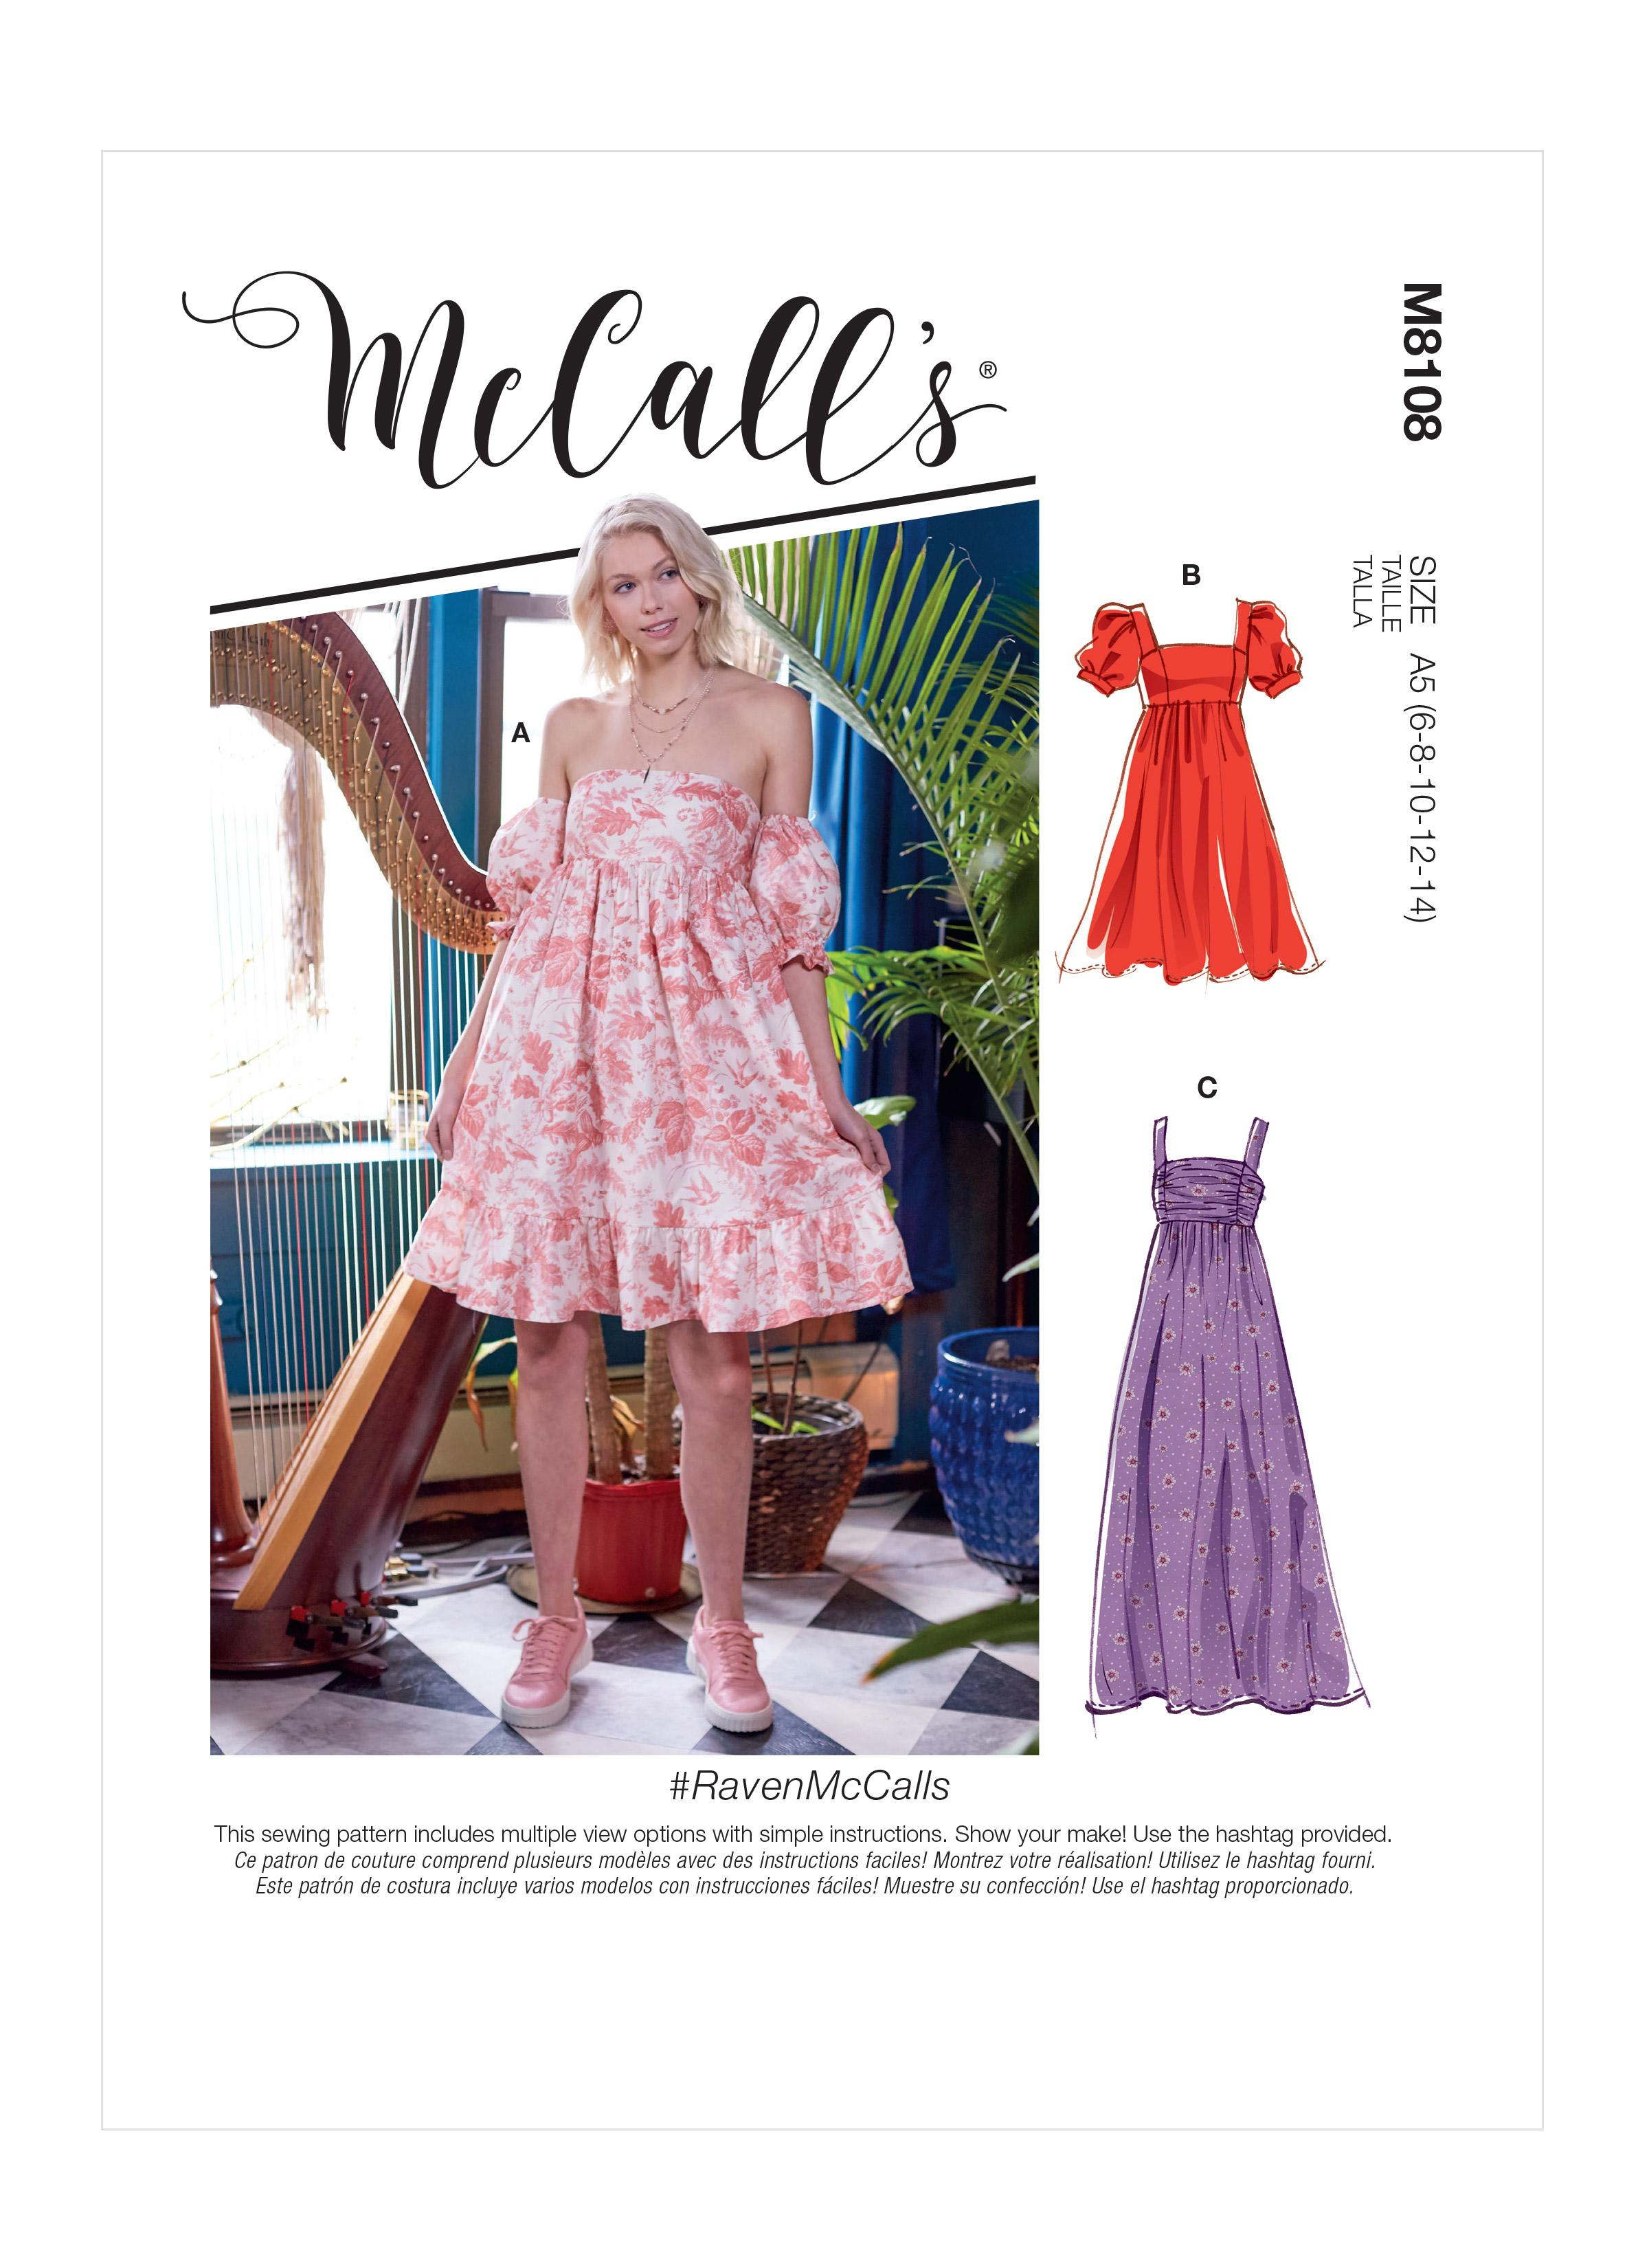 McCalls M8108 #RavenMcCalls - Misses' Empire Seam Gathered Dresses In Various Lengths, Necklines & Straps